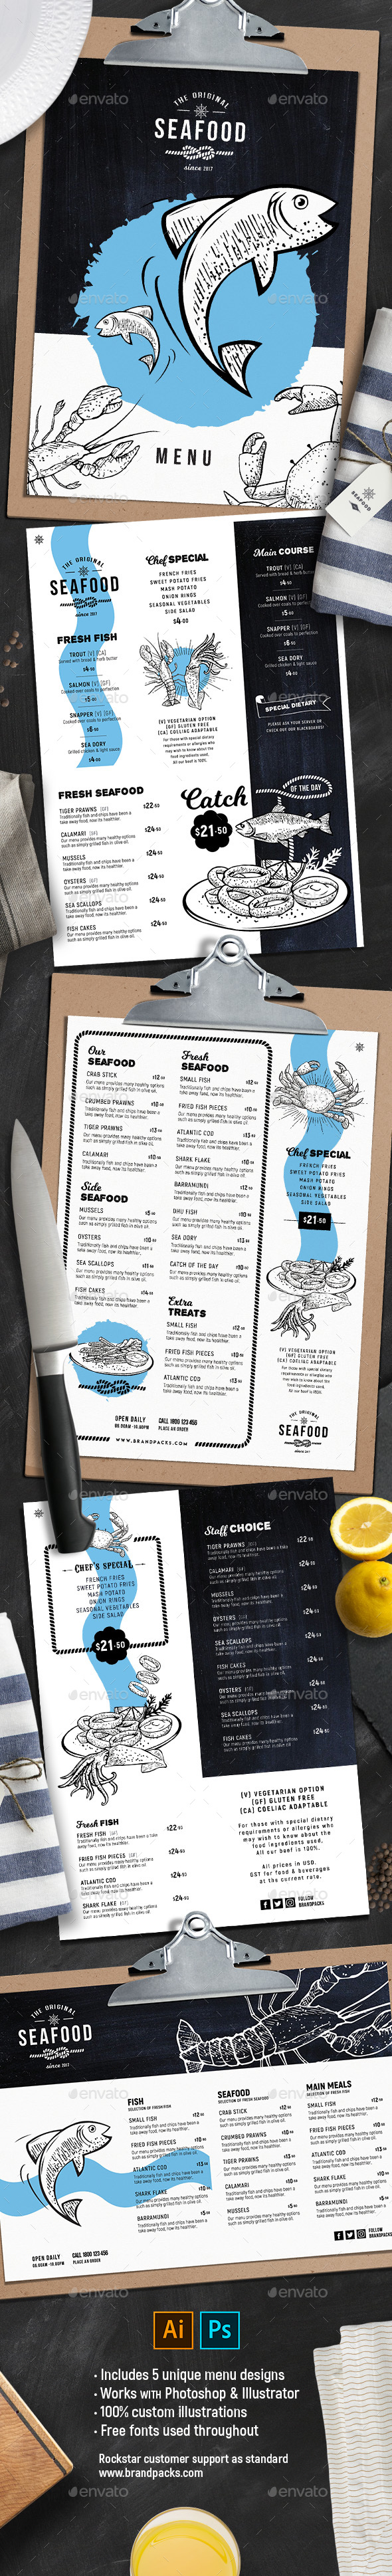 Seafood Menu Templates - Food Menus Print Templates